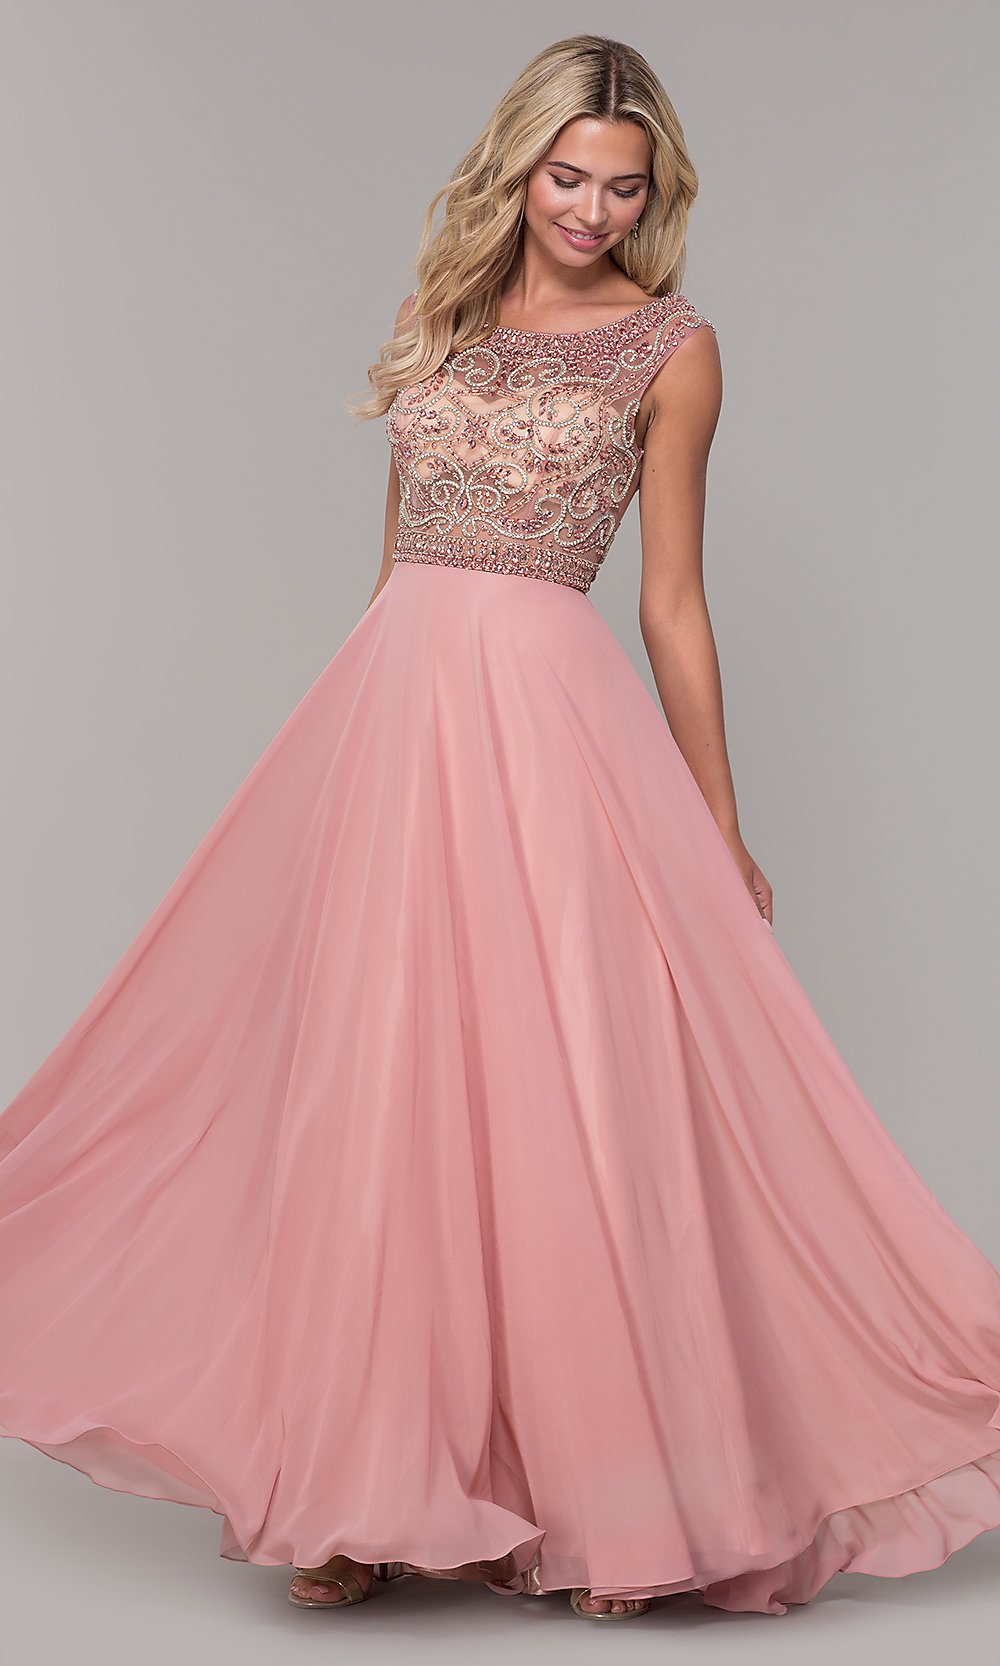 995c32b8ca85f Dave and Johnny Long Prom Dress with Beaded Bodice